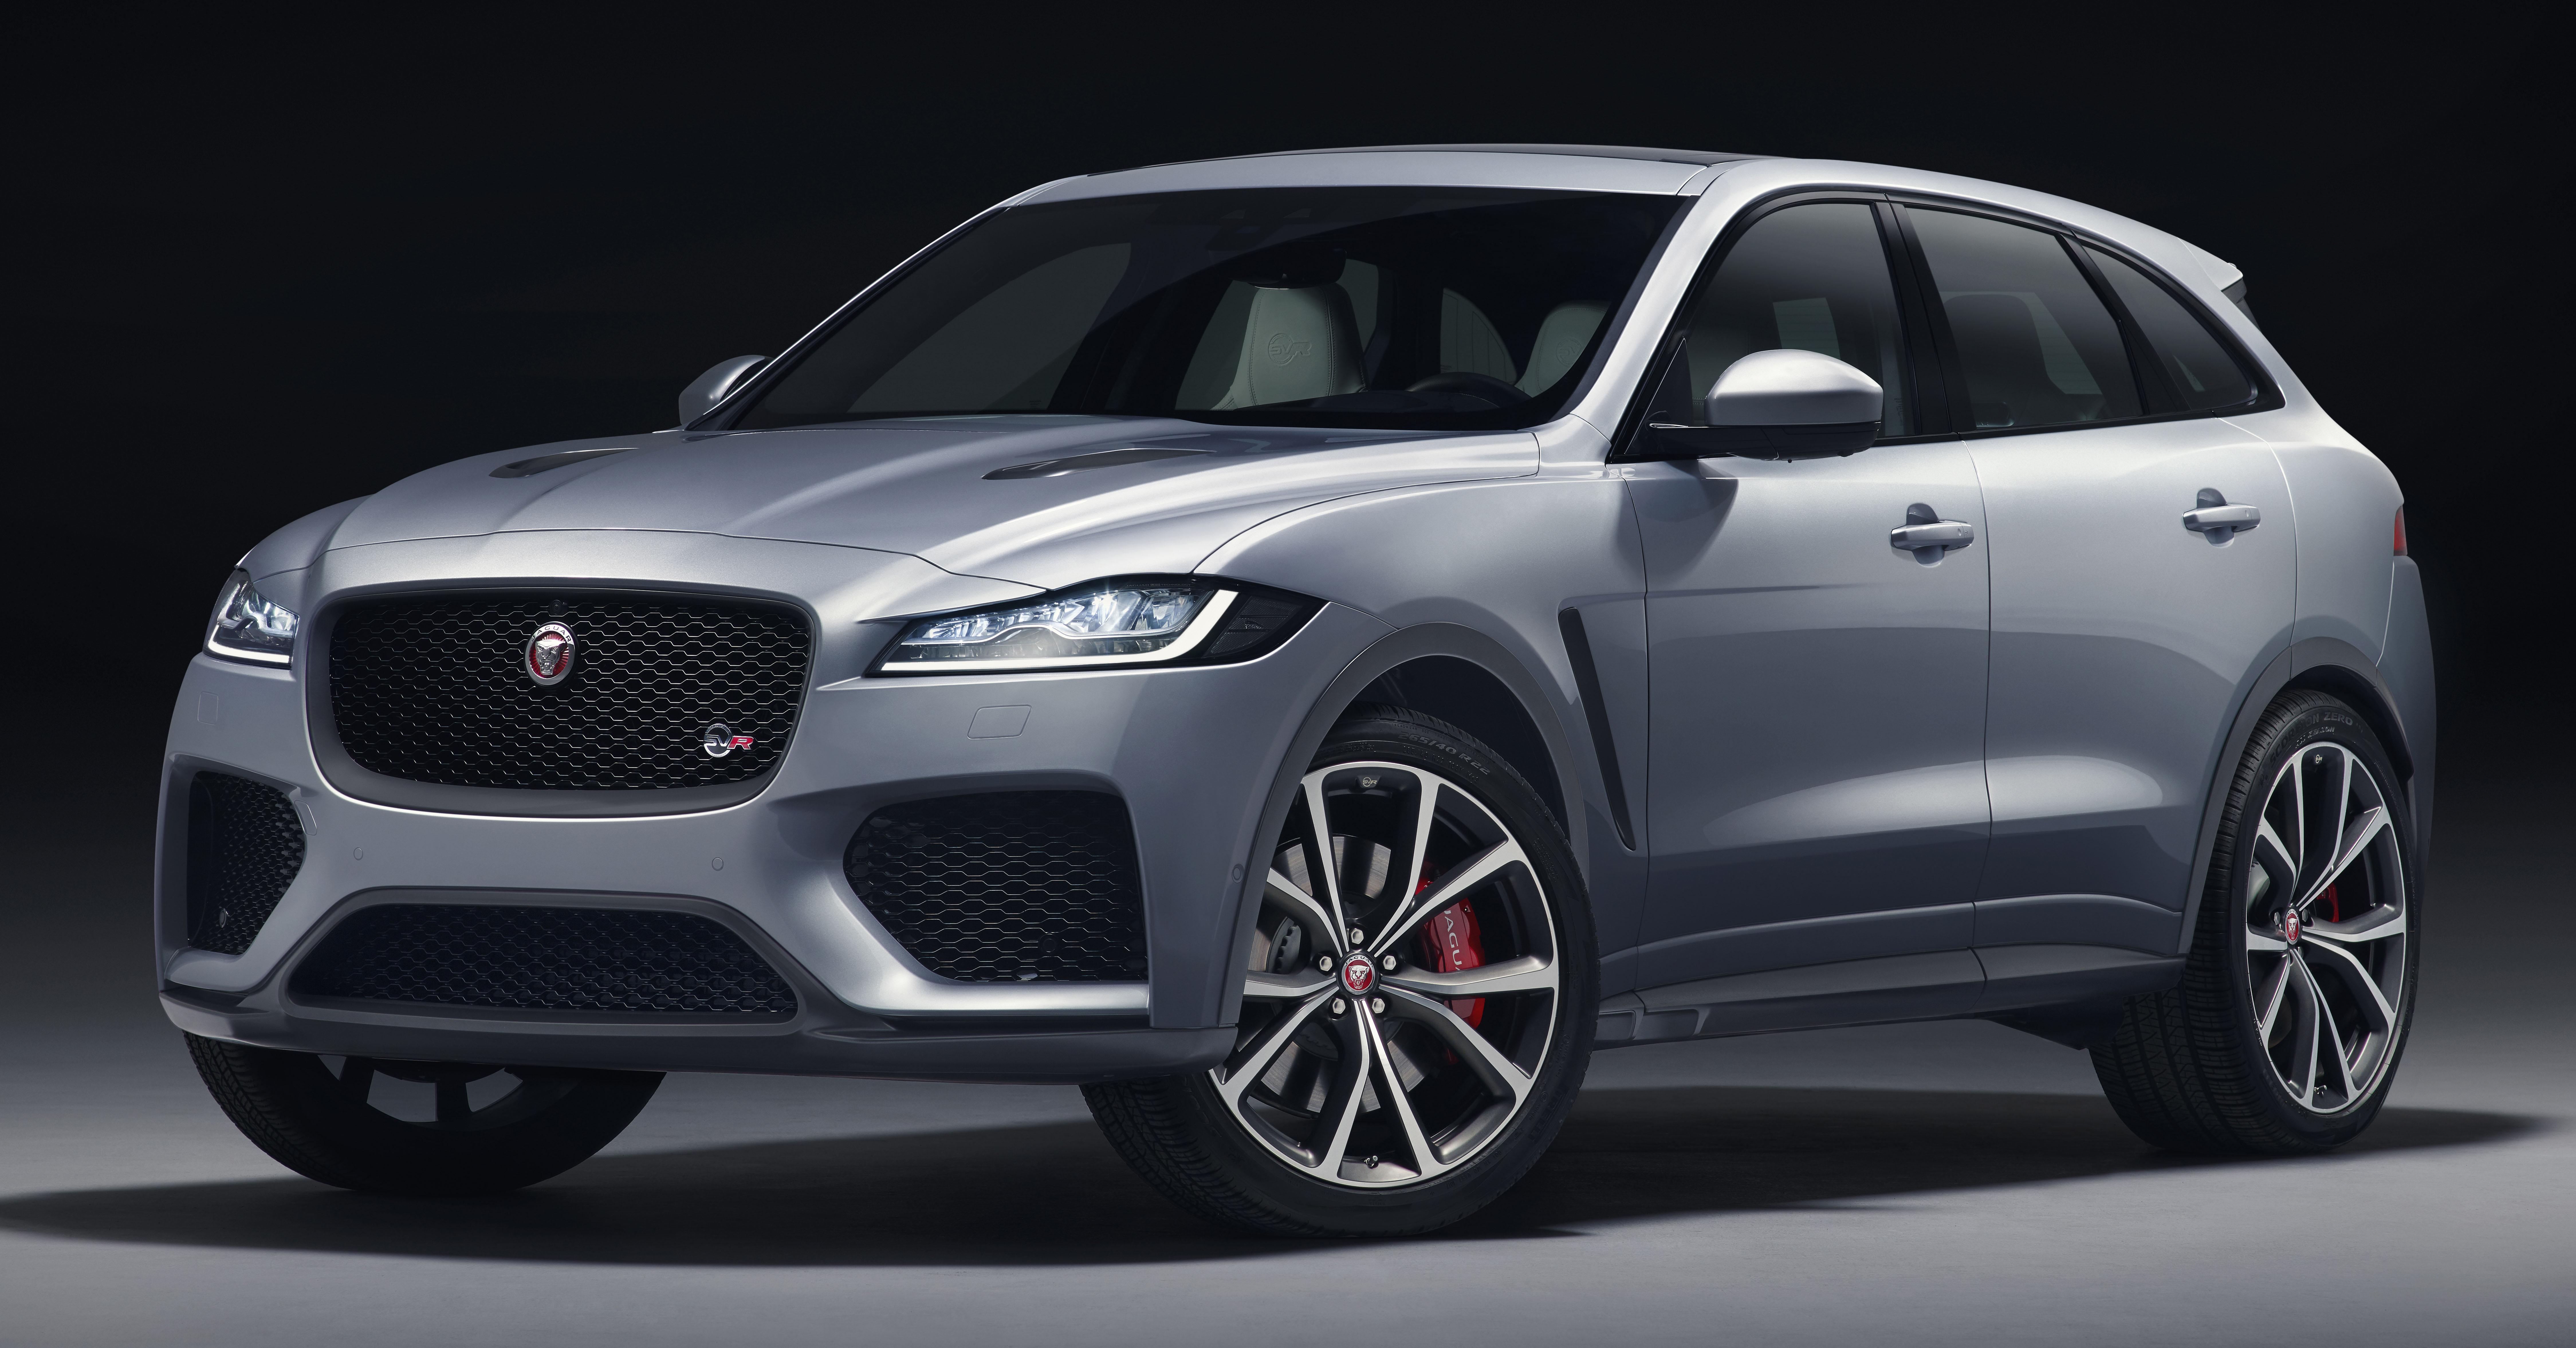 jaguar planning flagship j pace suv 2021 debut. Black Bedroom Furniture Sets. Home Design Ideas